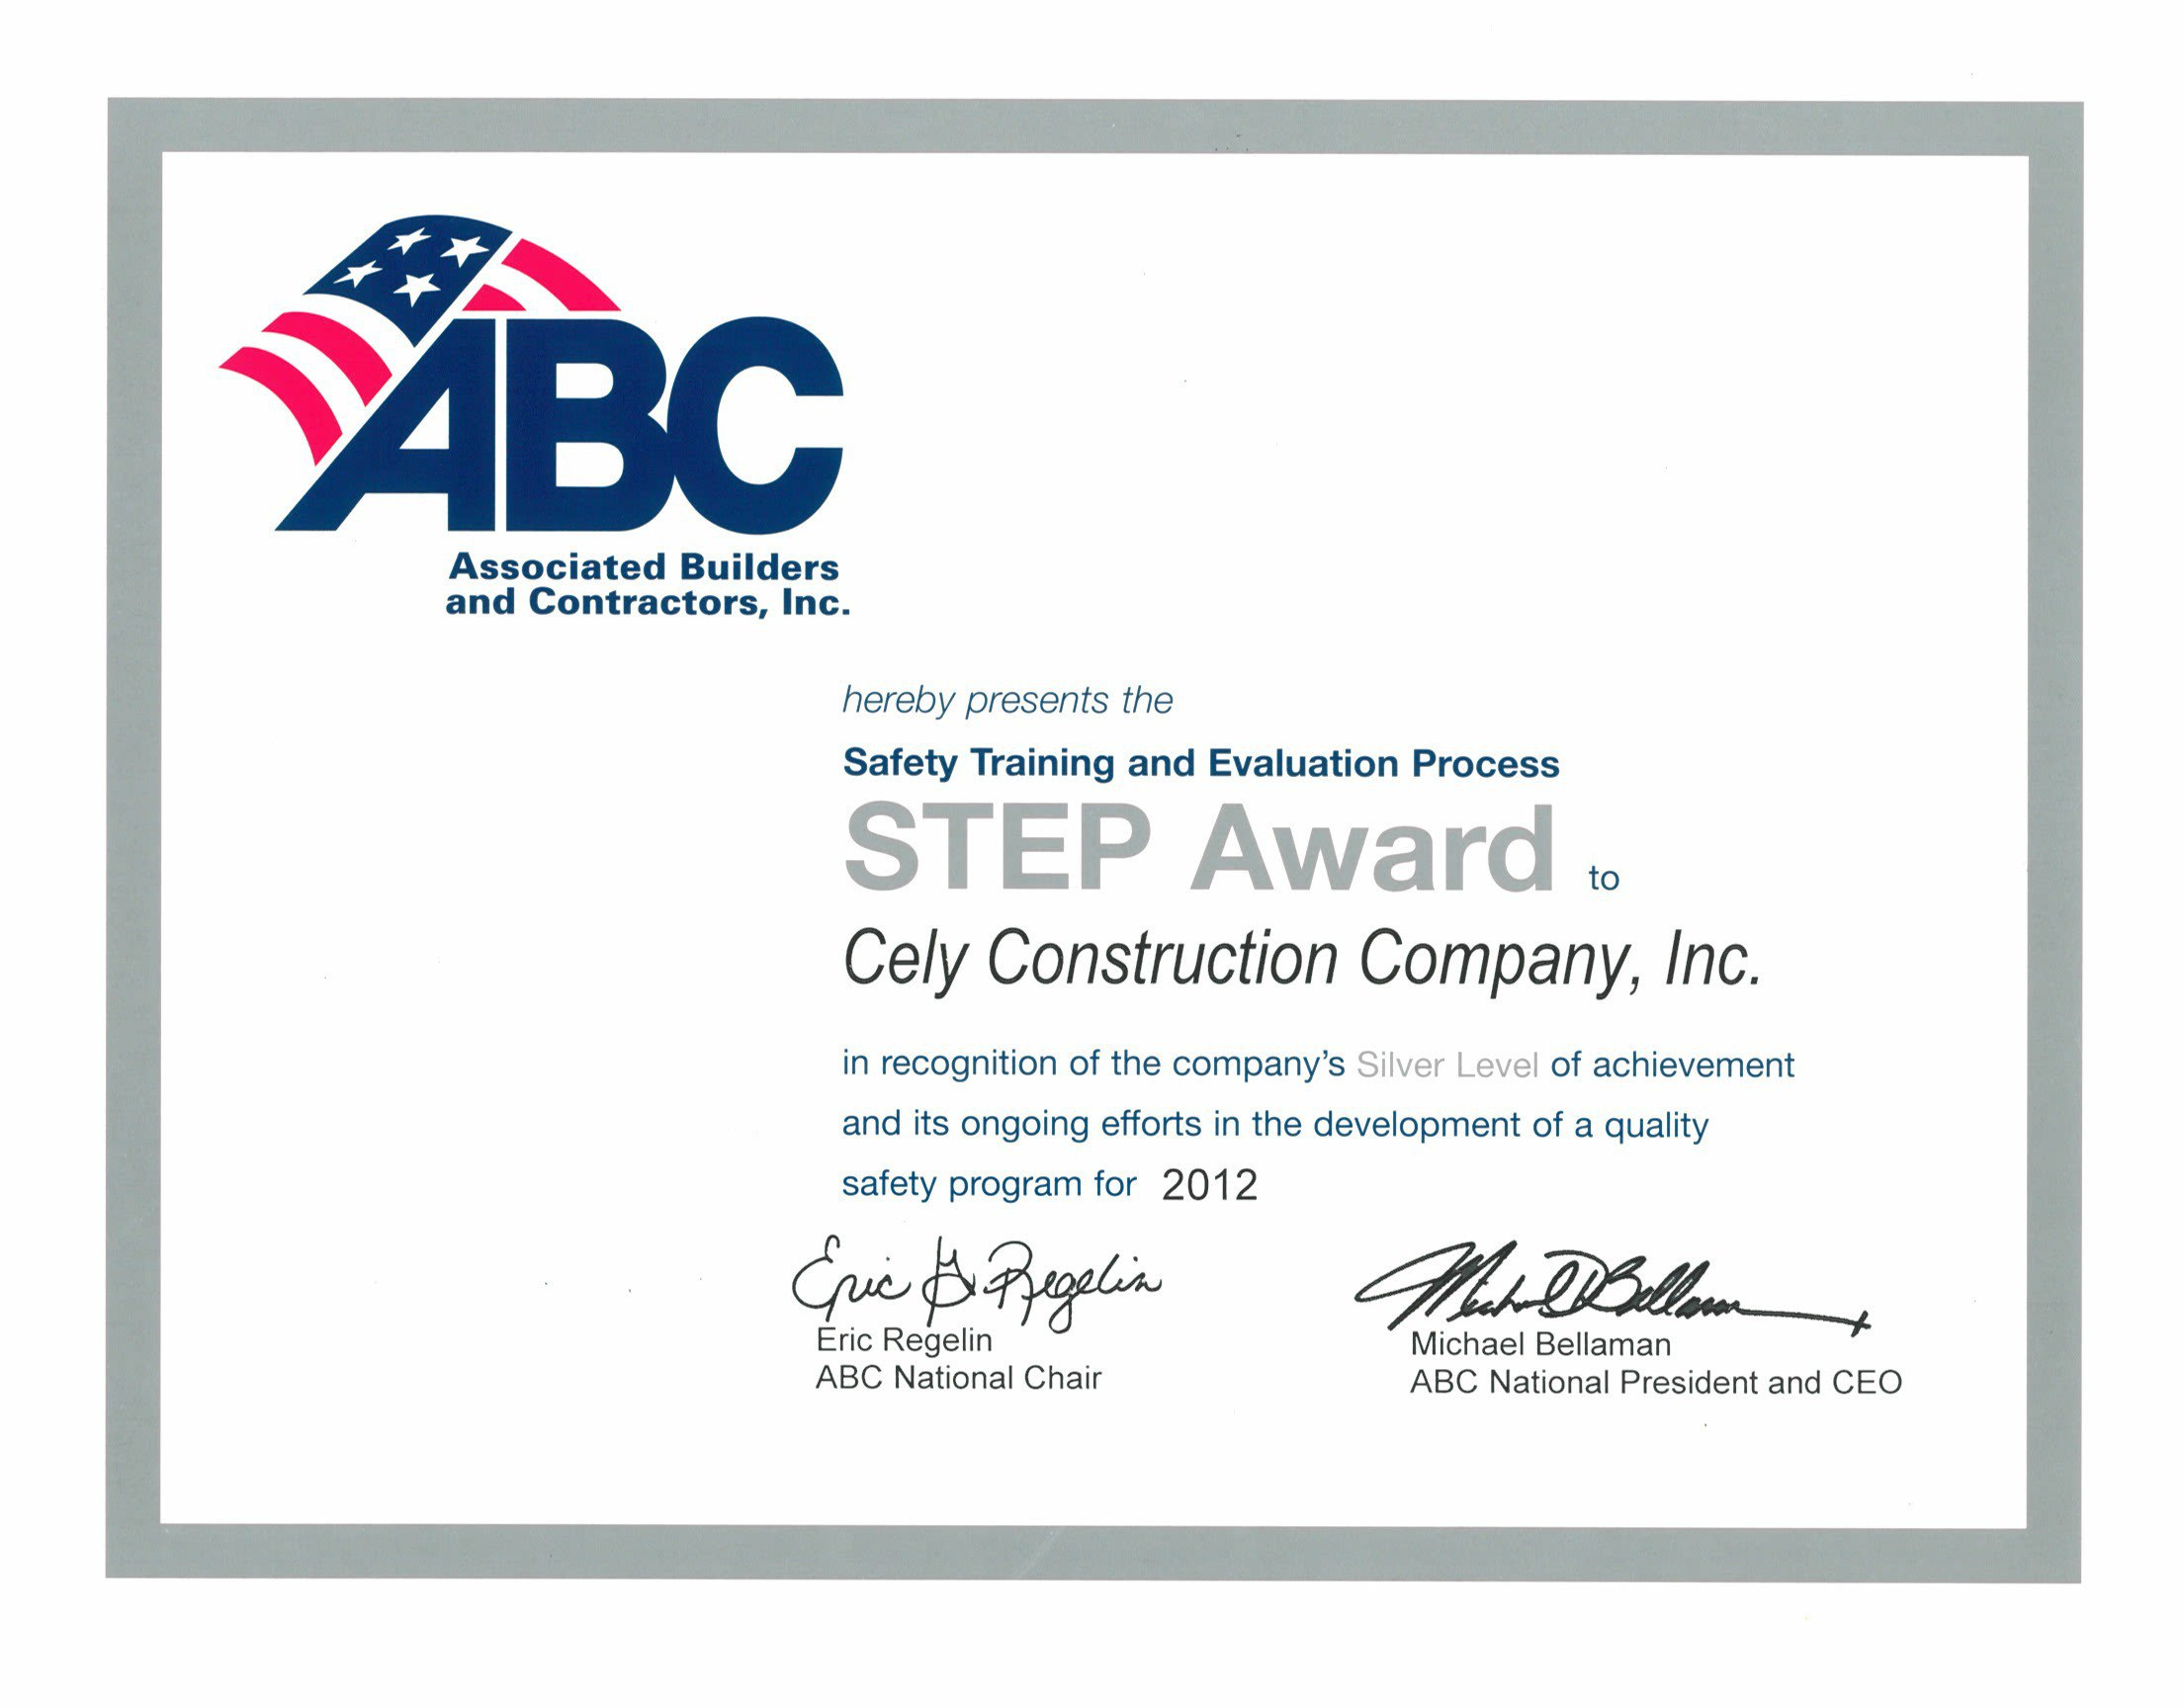 General Contractor - Associated Builders and Contractors, Inc. - Safety Training and Evaluation Process (STEP) Award 2012